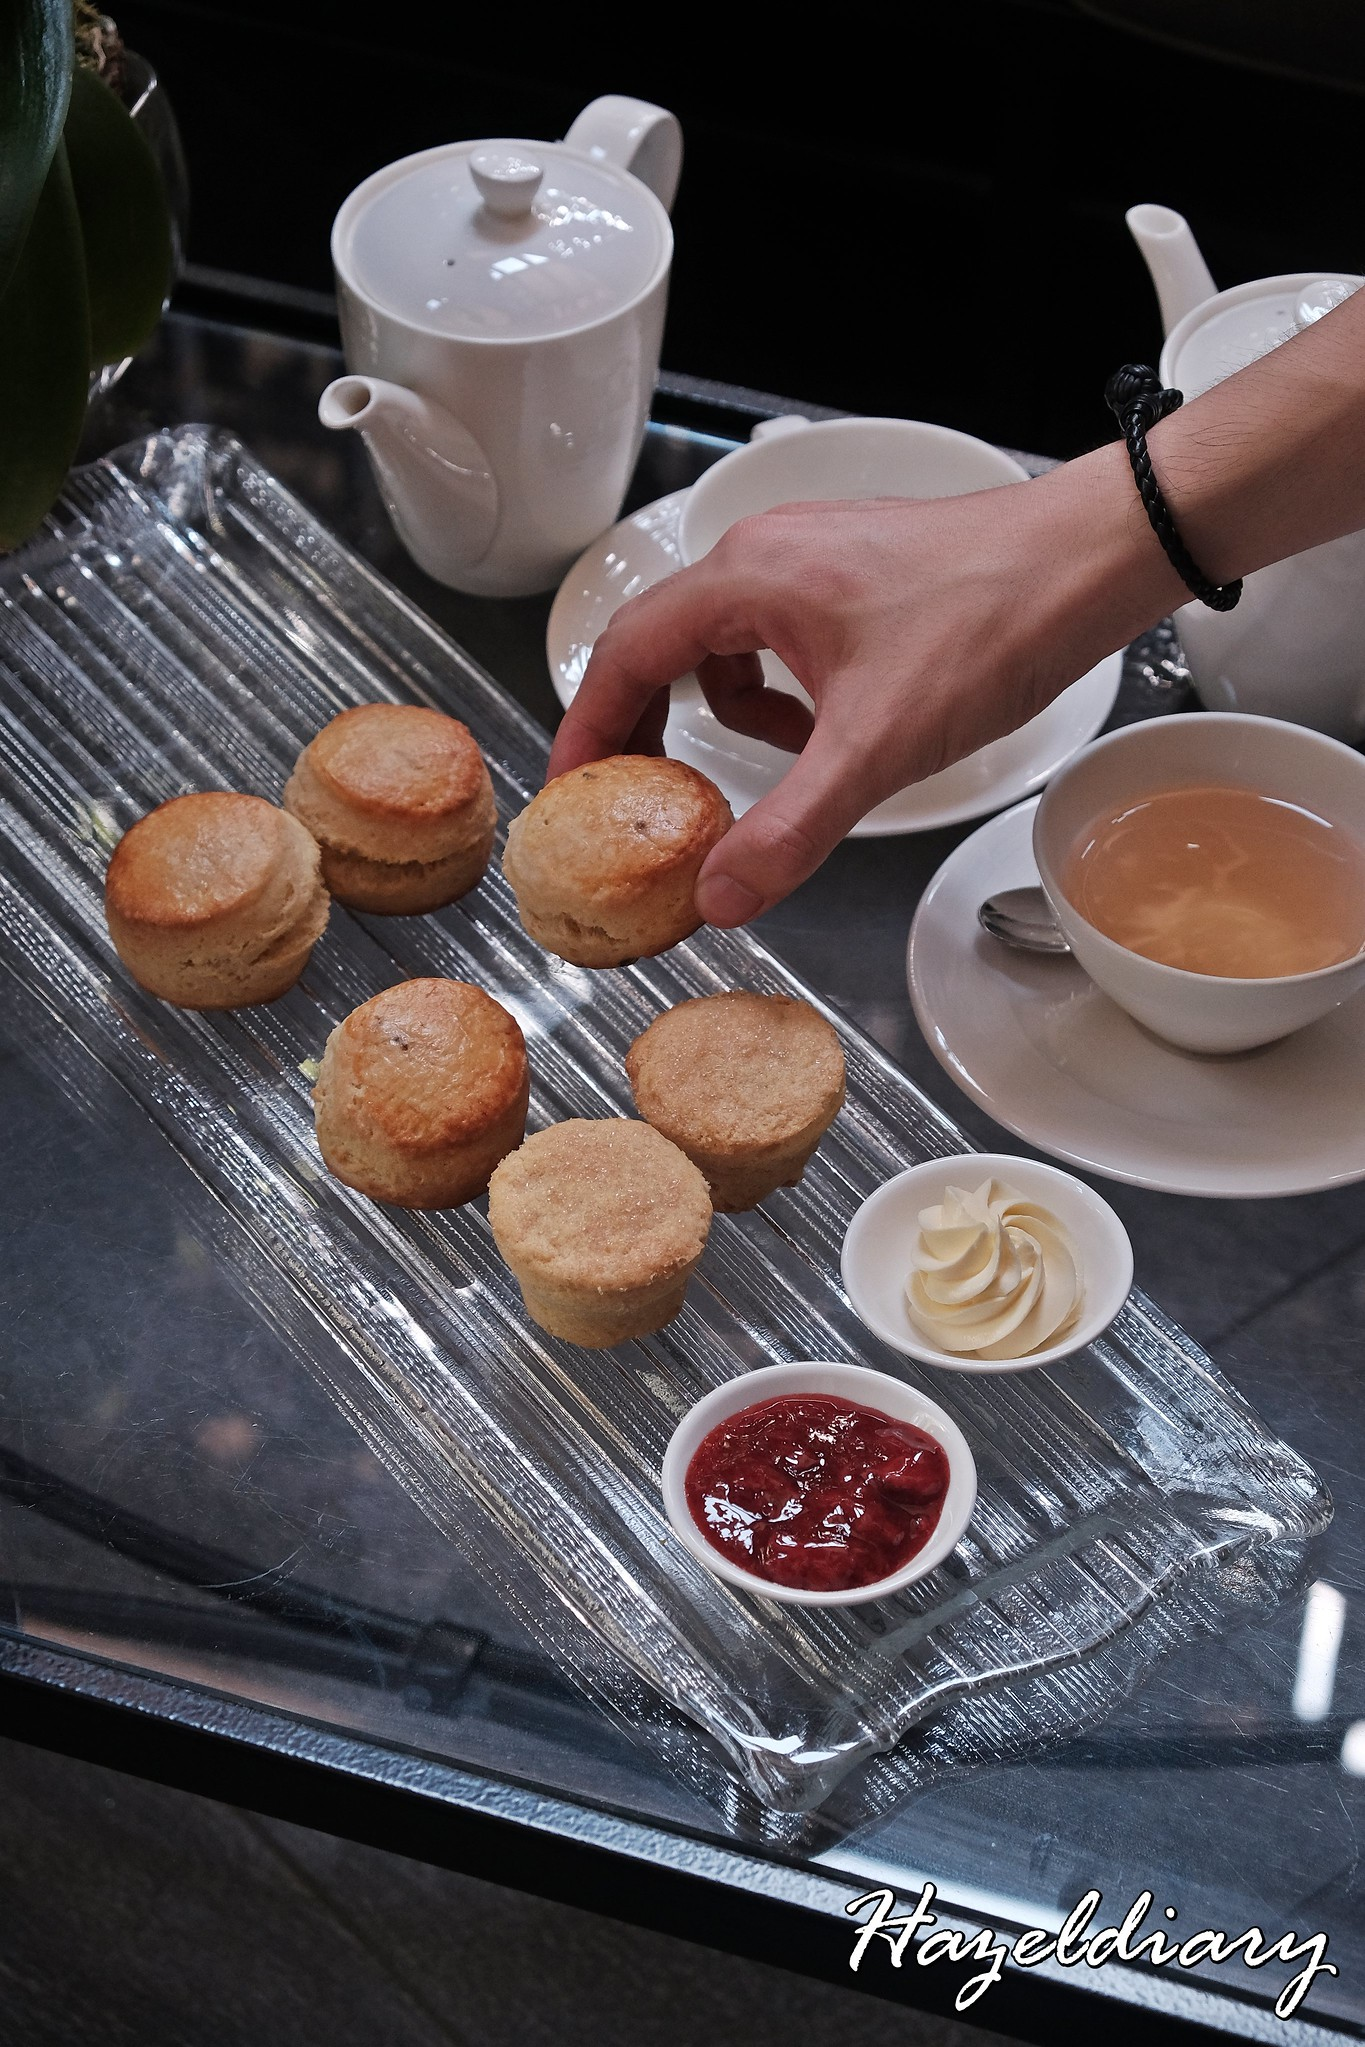 Floral Weekend High Tea-One Ninety Bar Four Seasons Hotel Singapore-Scones-1